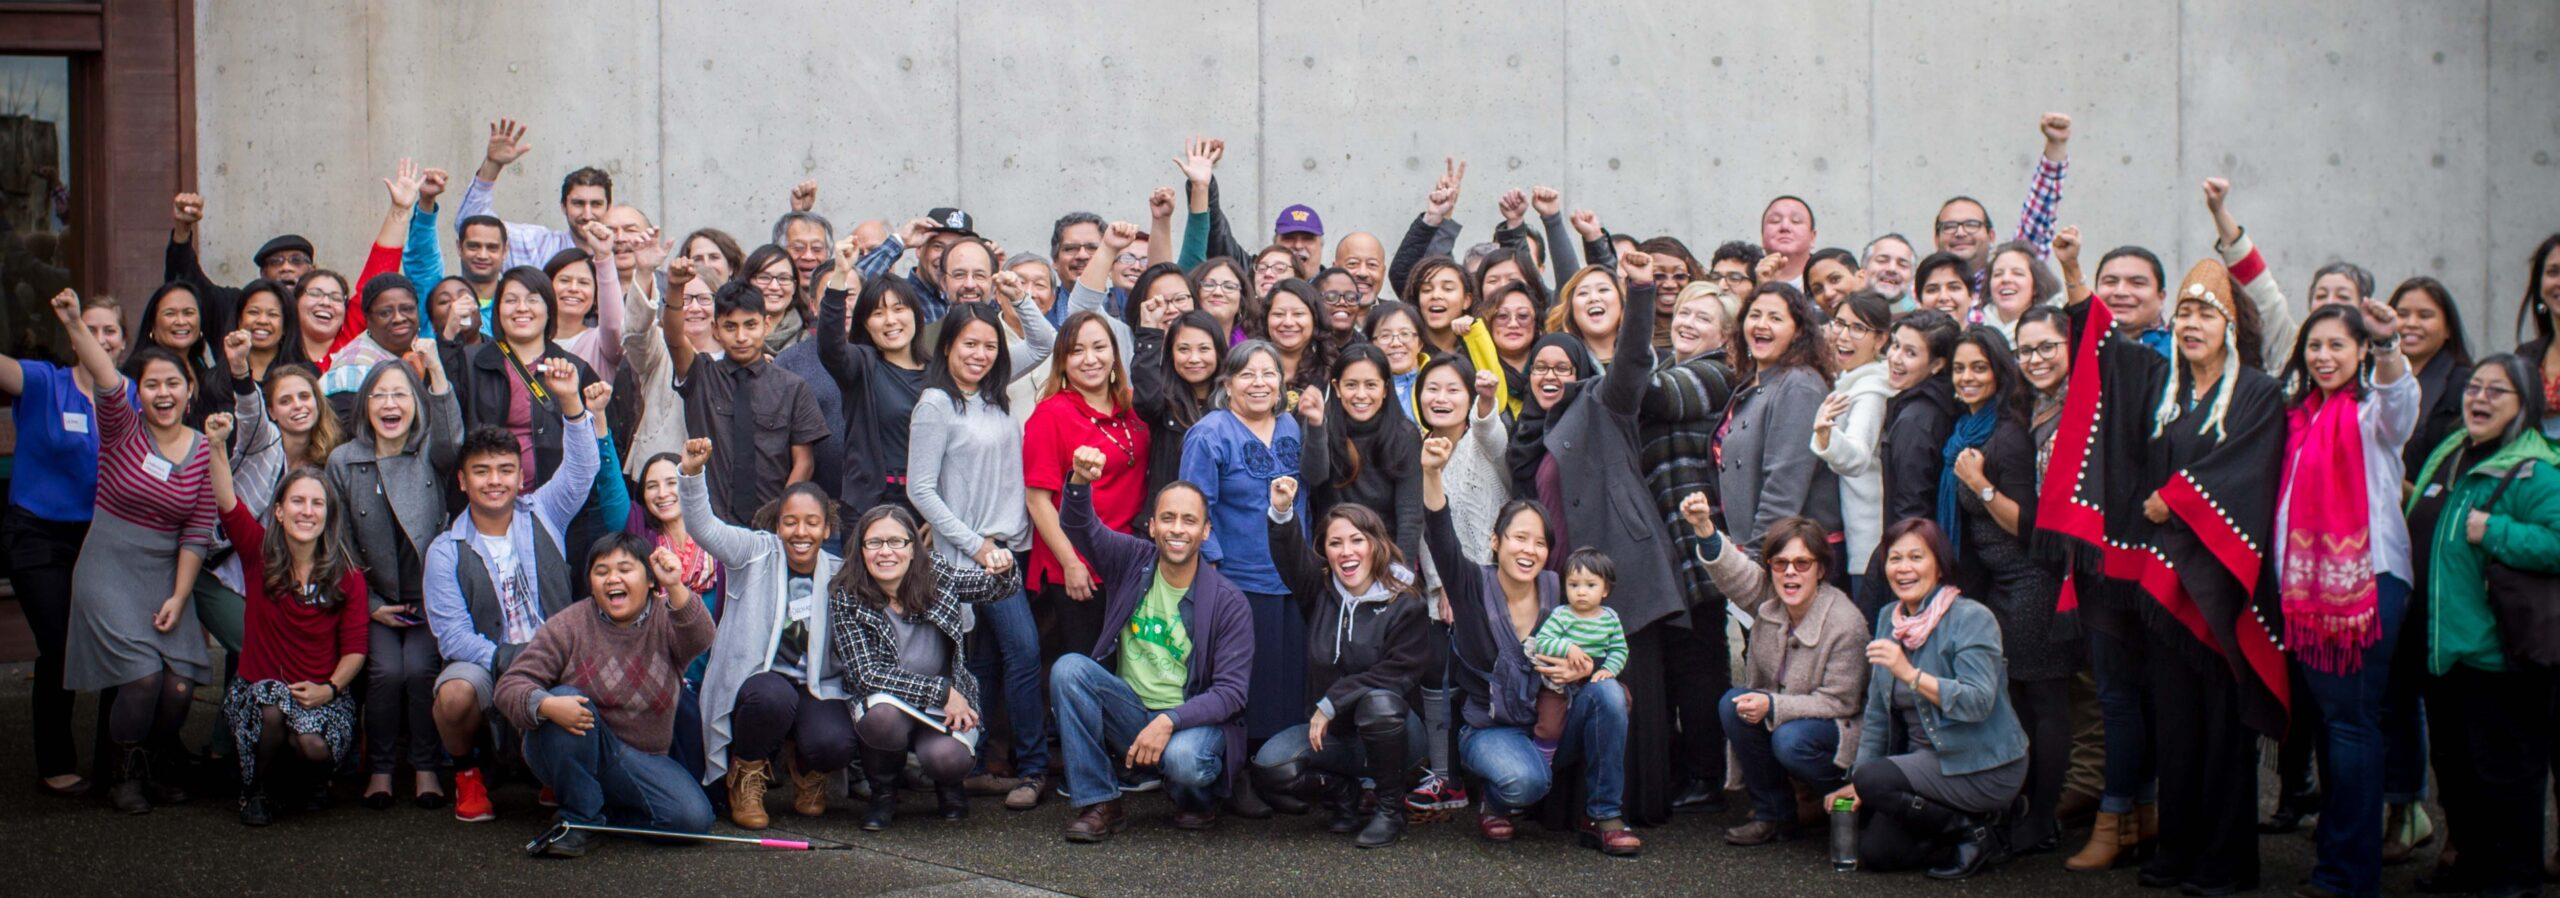 Leaders of color at climate justice summit